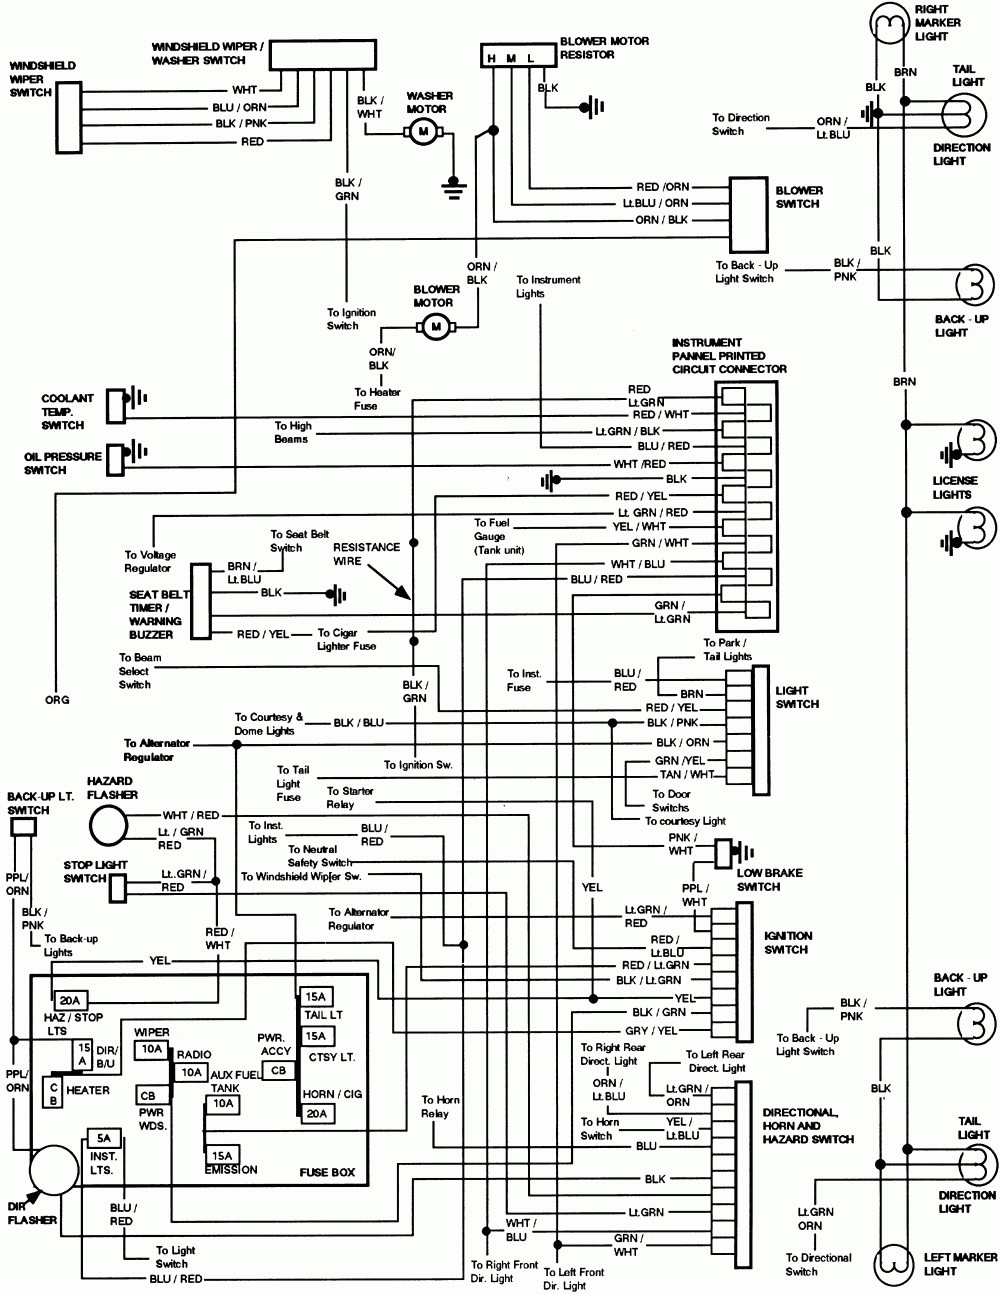 Need Wiring Diagram For 1995 Ford Explorer Diagrams 83 F100 Help Truck Detailed 95 Engine 1996